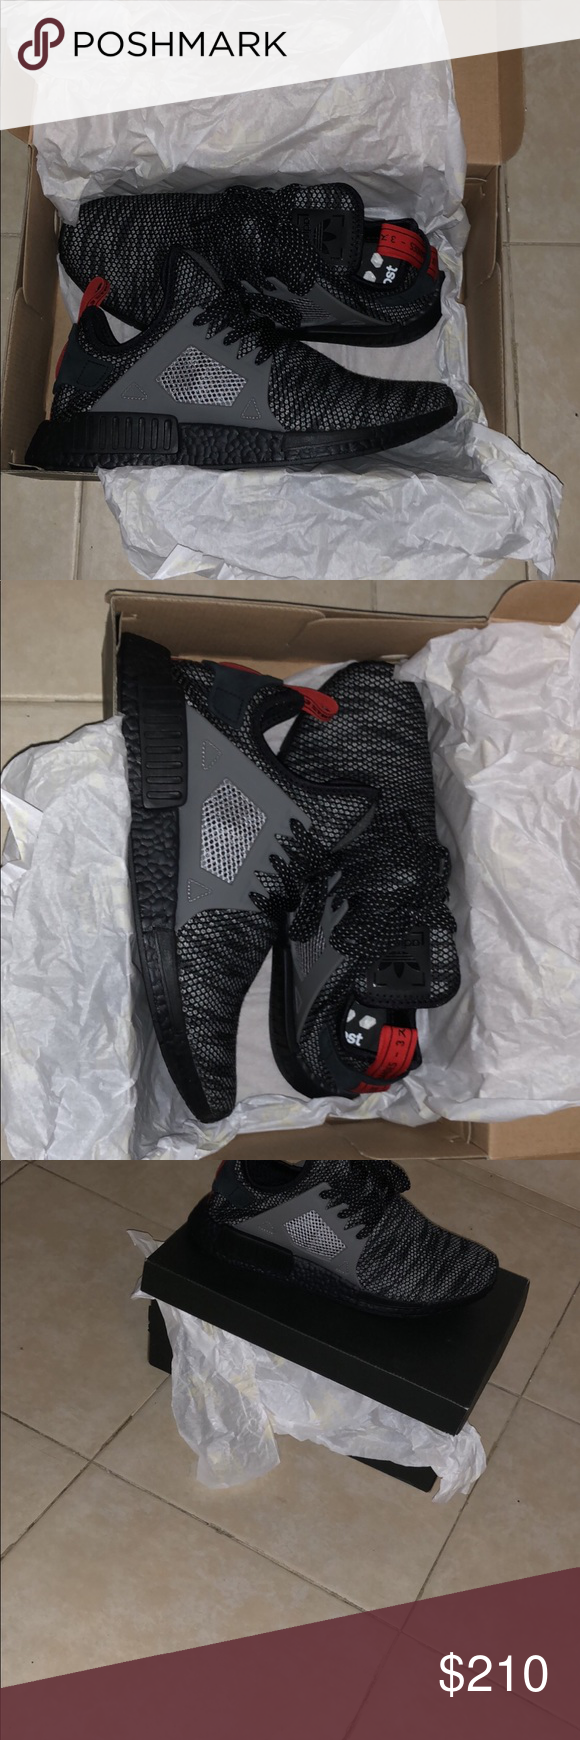 7db7d8efc29 Men s Adidas NMD XR1 JD Sports Exclusive Men s Adidas NMD XR1 JD Sports  Exclusive. Size 10.5 100% Authentic! Brand New with Box! adidas Shoes  Sneakers